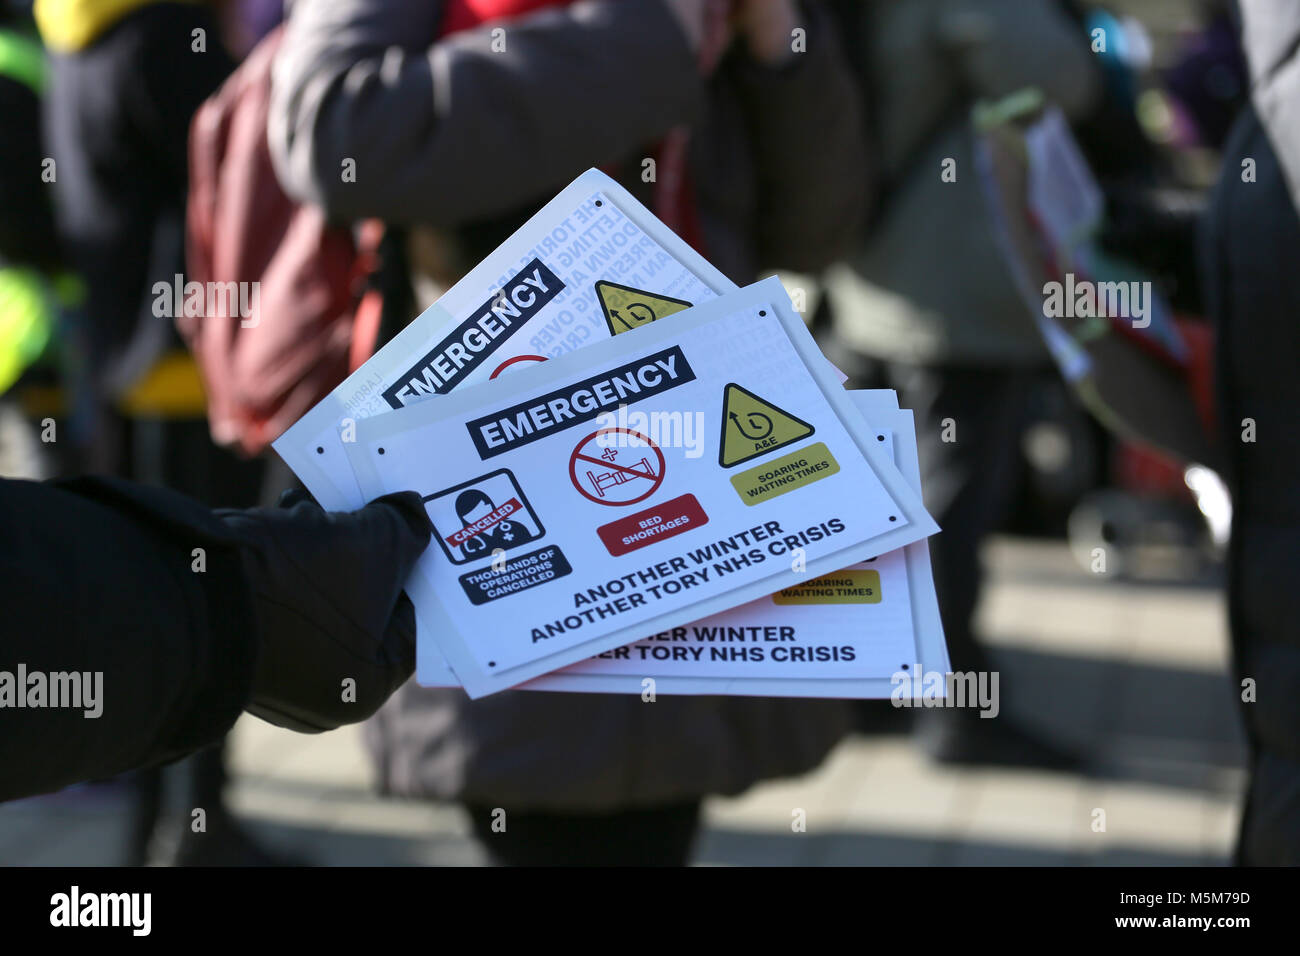 Leaflets around the NHS are handed out at rally to defend the NHS, Bolton, 24th February, 2018 (C)Barbara Cook/Alamy - Stock Image